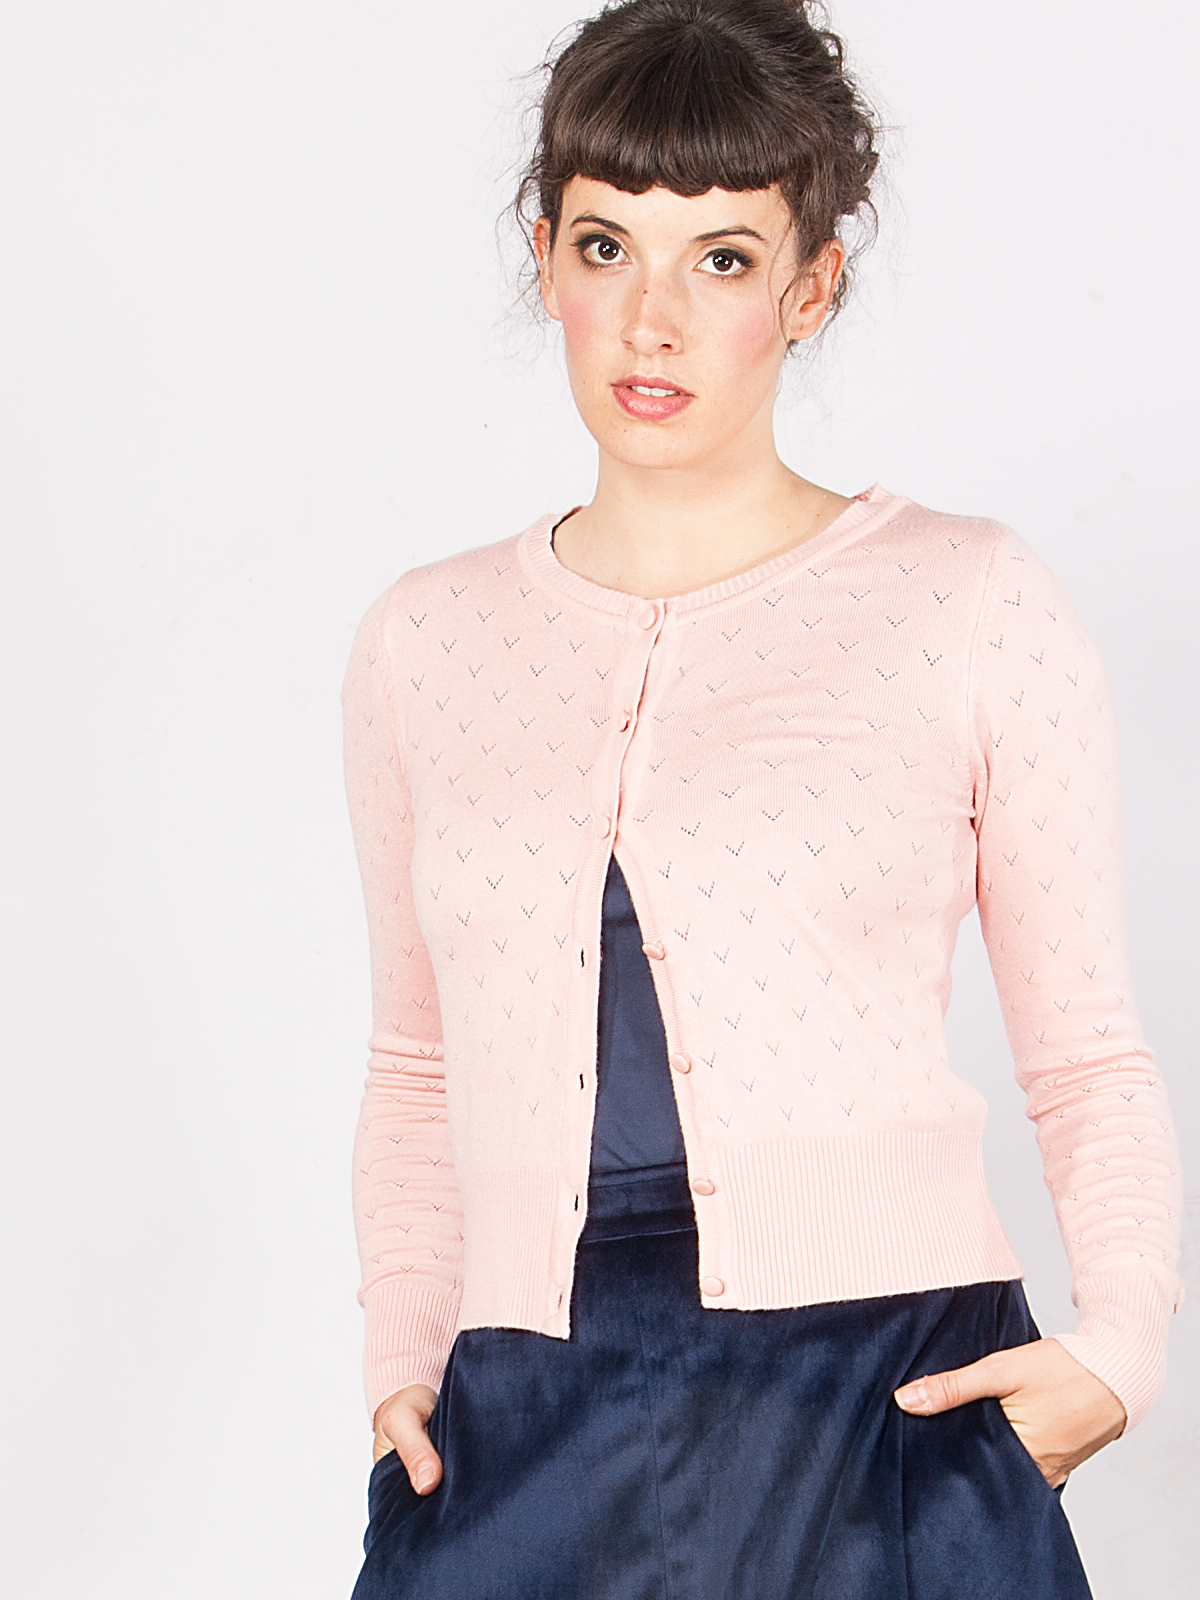 Tant Sofia-Lovelyn Cardigan Blush, Mme YèYè